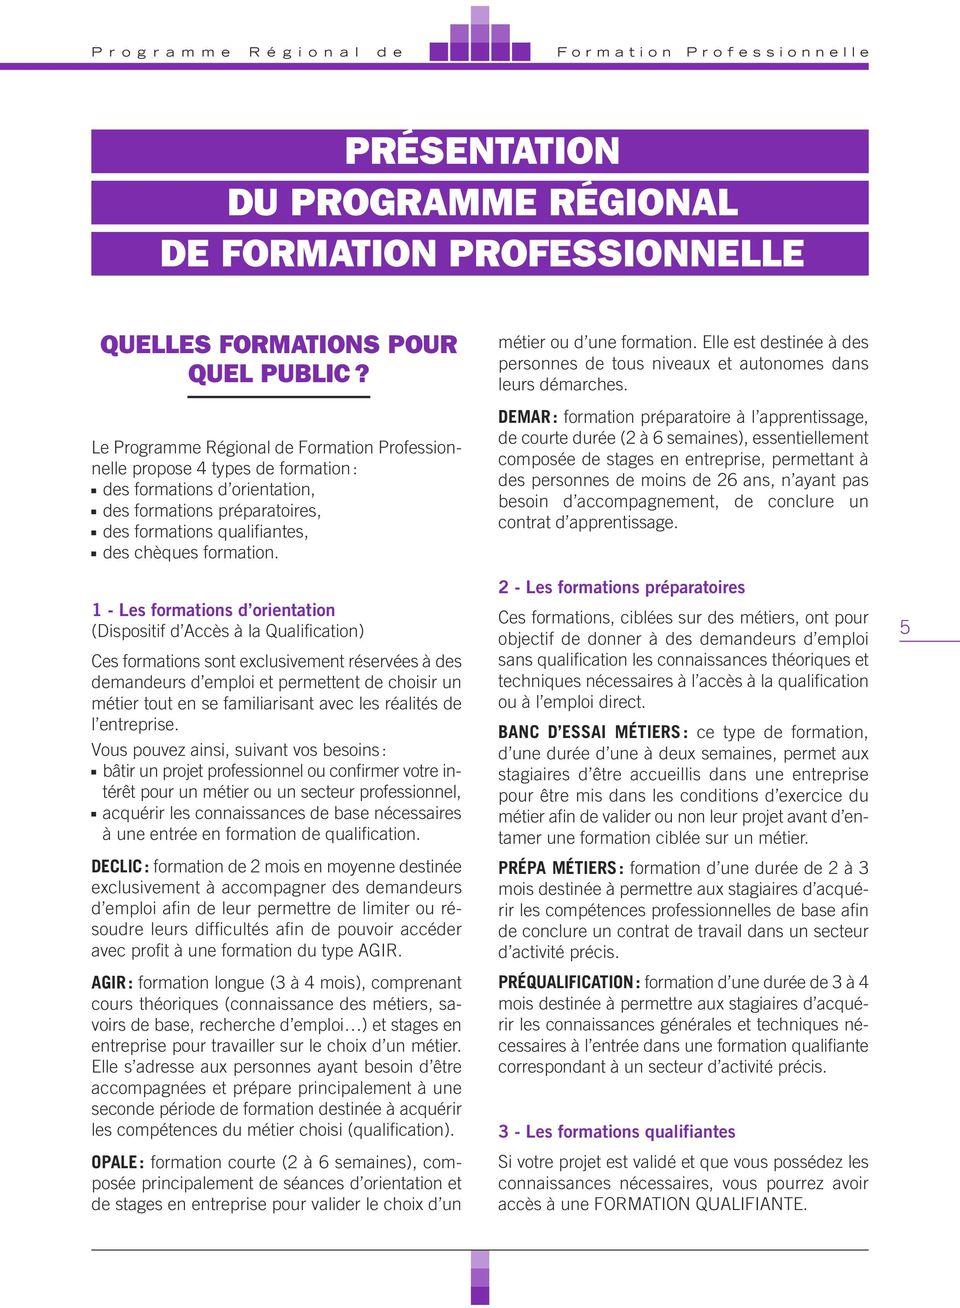 1 - Les formations d orientation (Dispositif d Accès à la Qualification) Ces formations sont exclusivement réservées à des demandeurs d emploi et permettent de choisir un métier tout en se